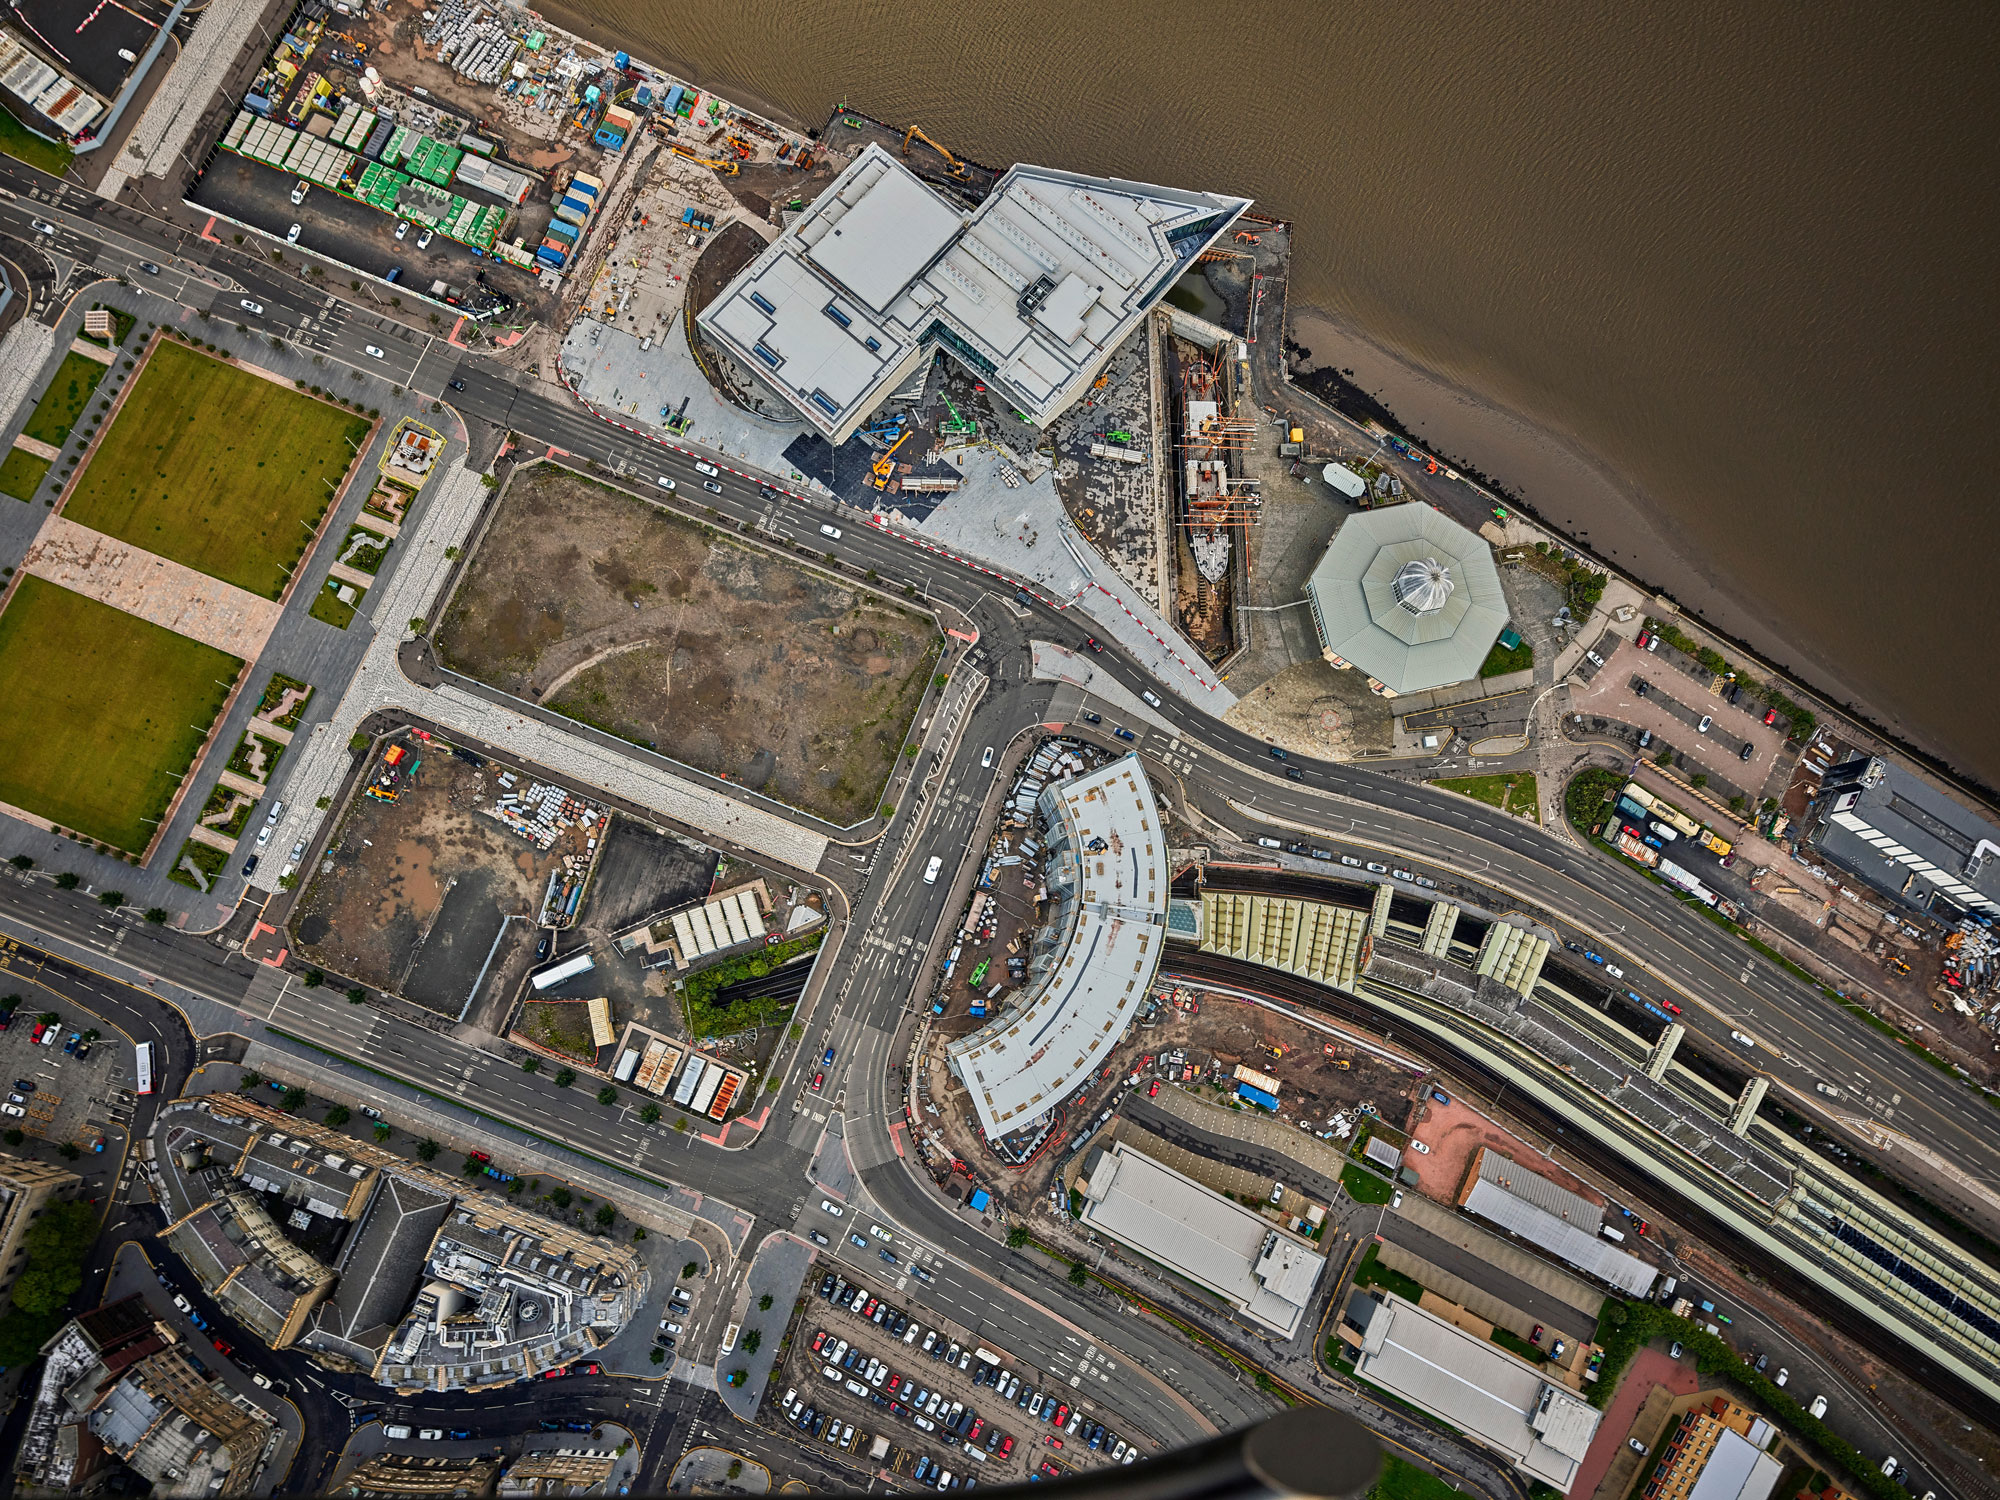 Aerial view of the V&A at Dundee under construction Photo: Alamy